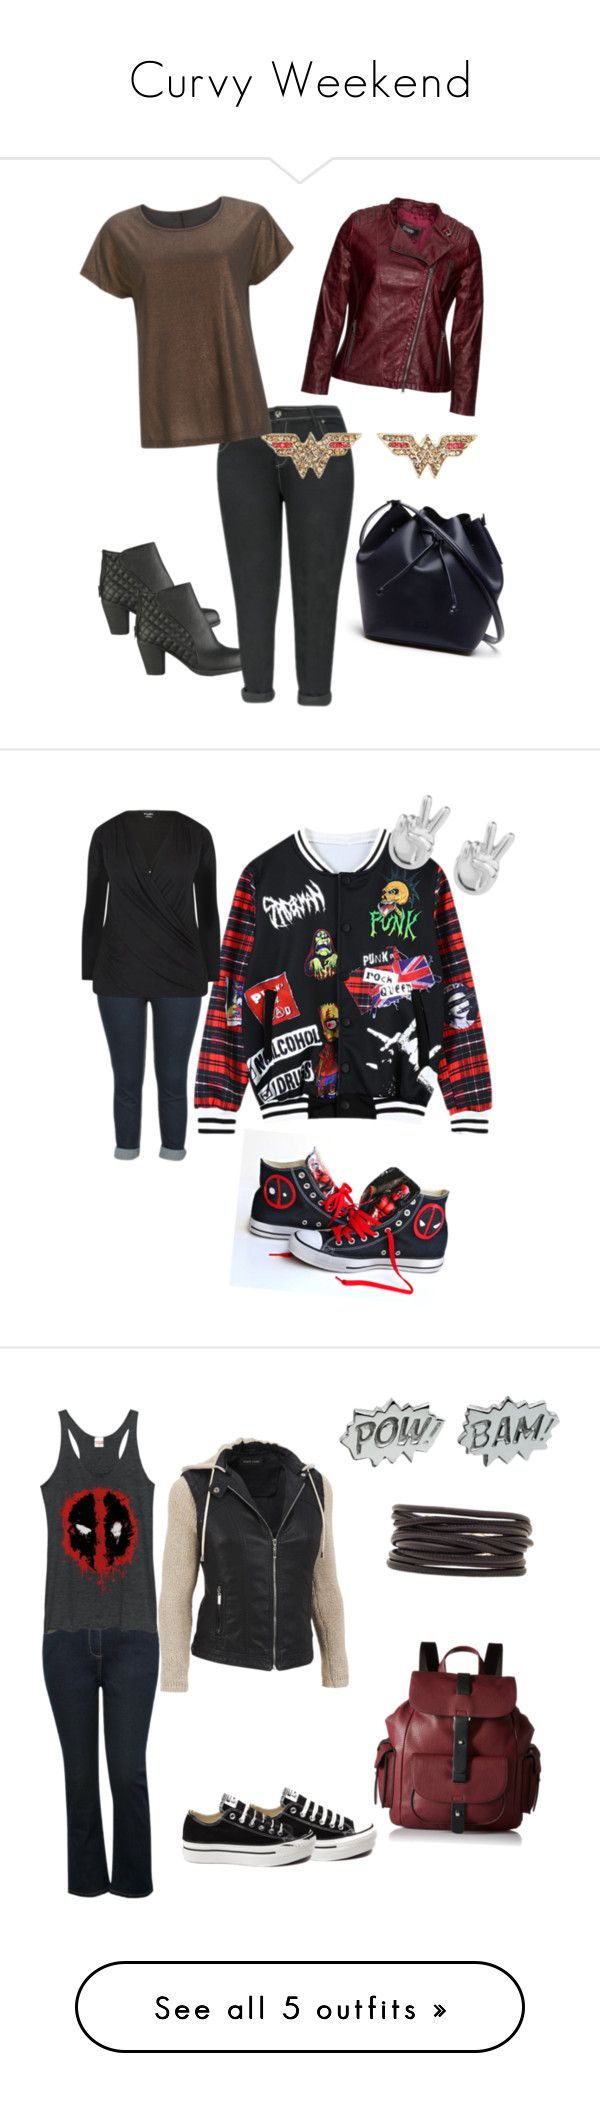 """""""Curvy Weekend"""" by lynetteamaro on Polyvore featuring Frapp, Lacoste, Chicnova Fashion, Converse, City Chic, Rock 'N Rose, plus size clothing, M&Co, Fifth Sun and Isabel Marant"""